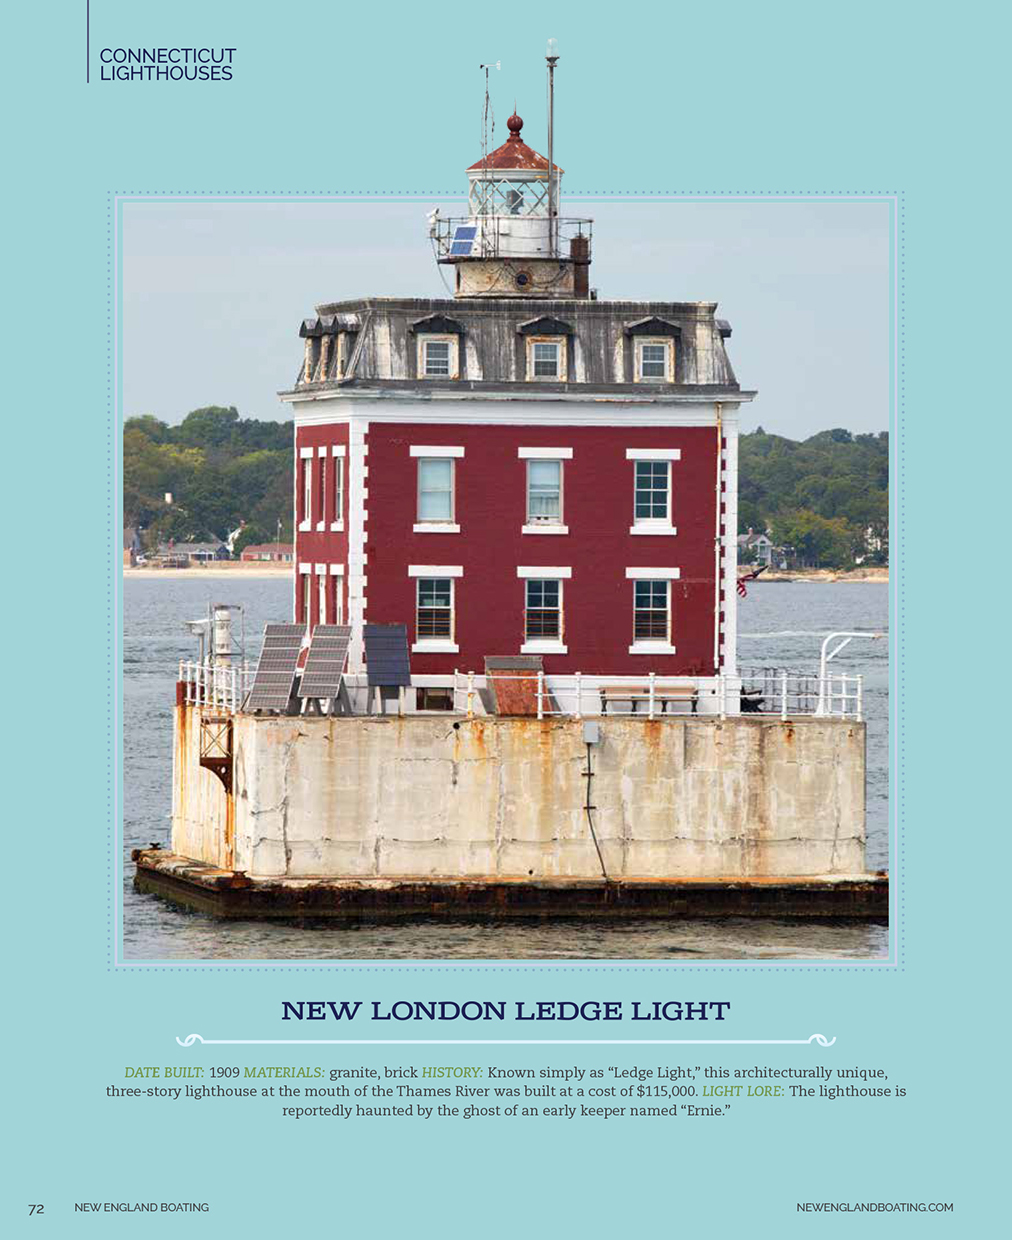 New-England-Boating-New-London-Ledge-Light-Caryn-B-Davis